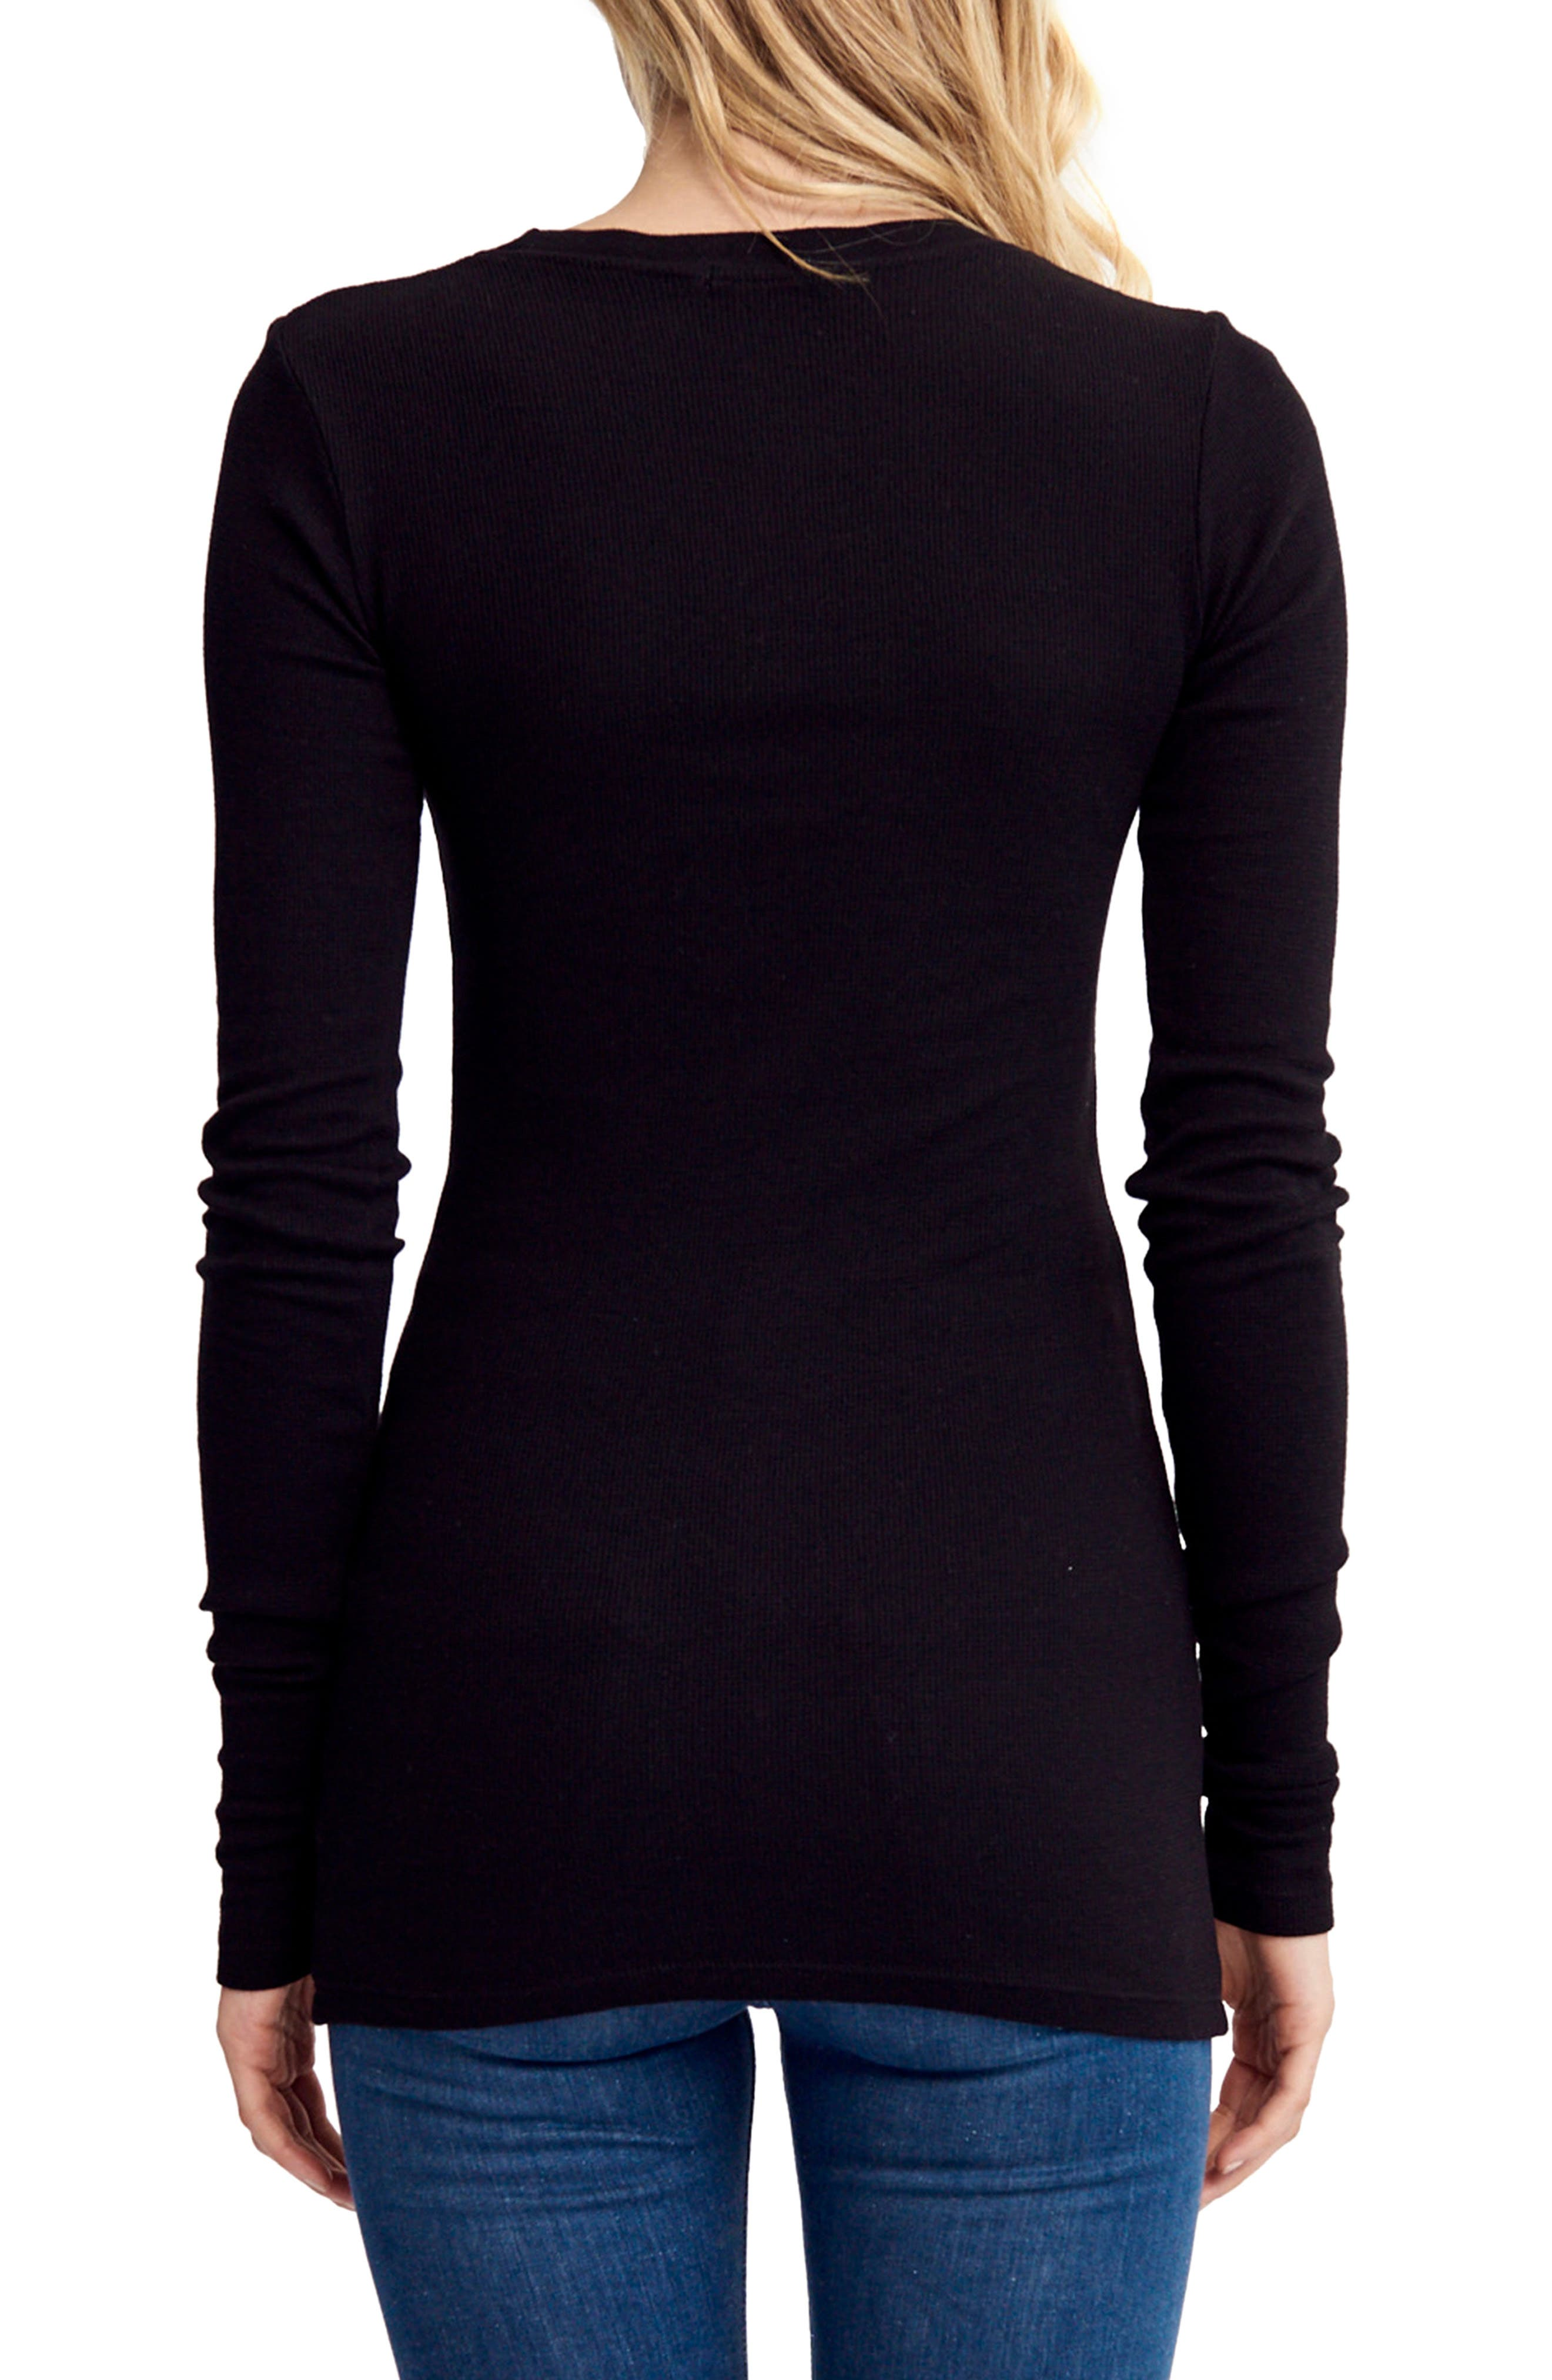 Thermal Knit Top,                             Alternate thumbnail 2, color,                             001